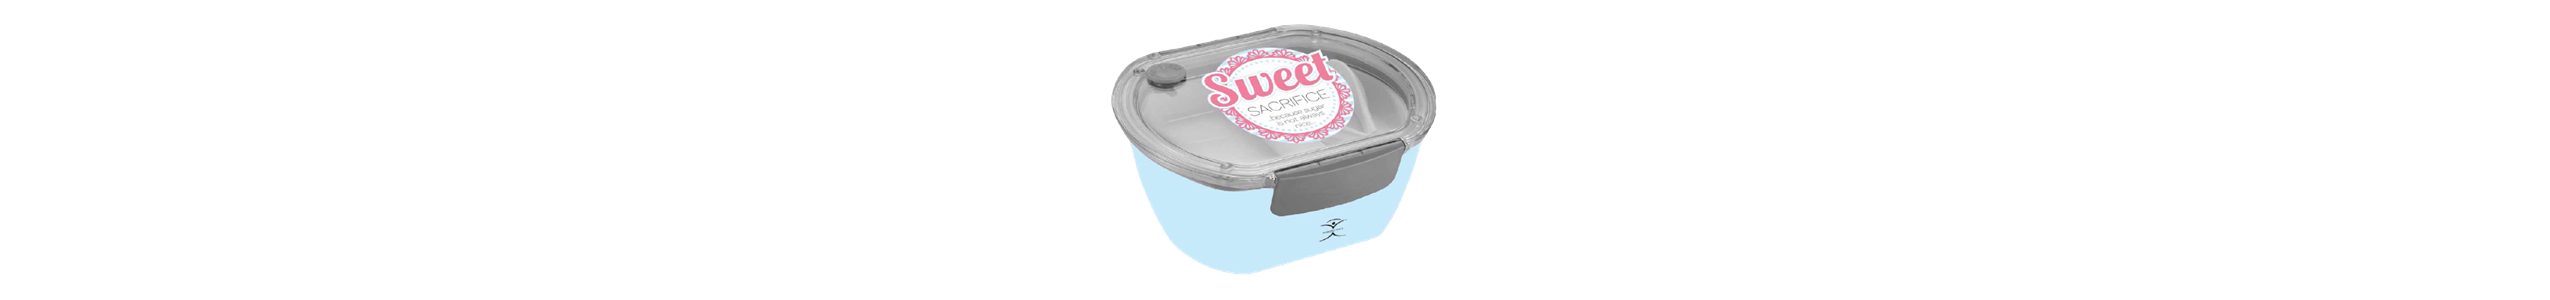 "<div style=""text-align: center;"">Participation Incentive - Compartmentalized Food Container</div>"